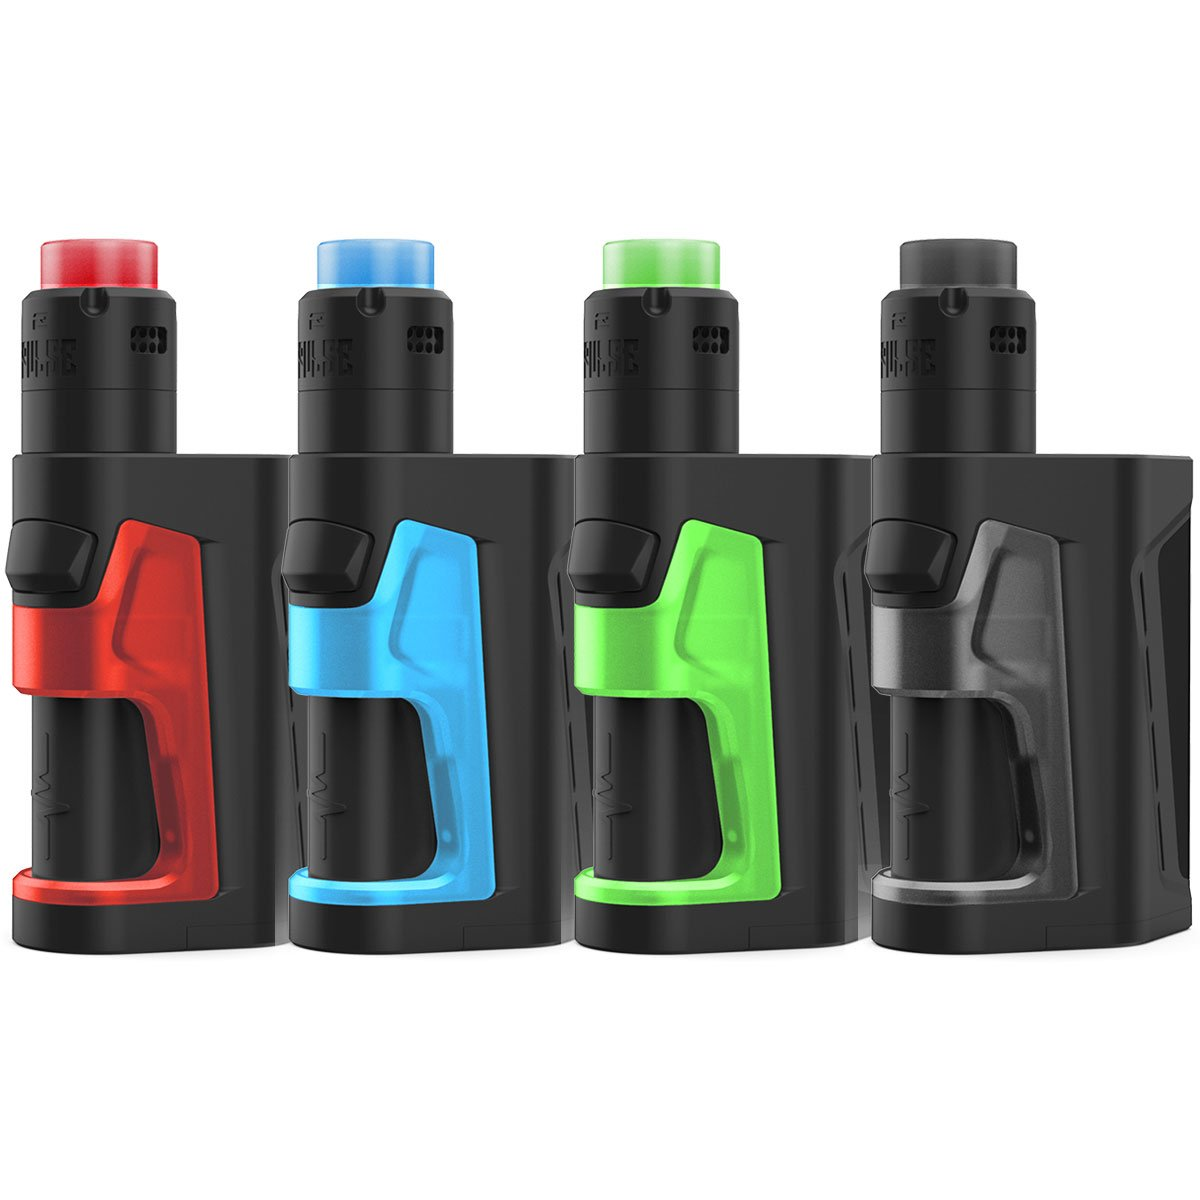 Vandy Vape Pulse Dual 18650 Squonk Mod with Pulse V2 RDA Kit - Vaporider